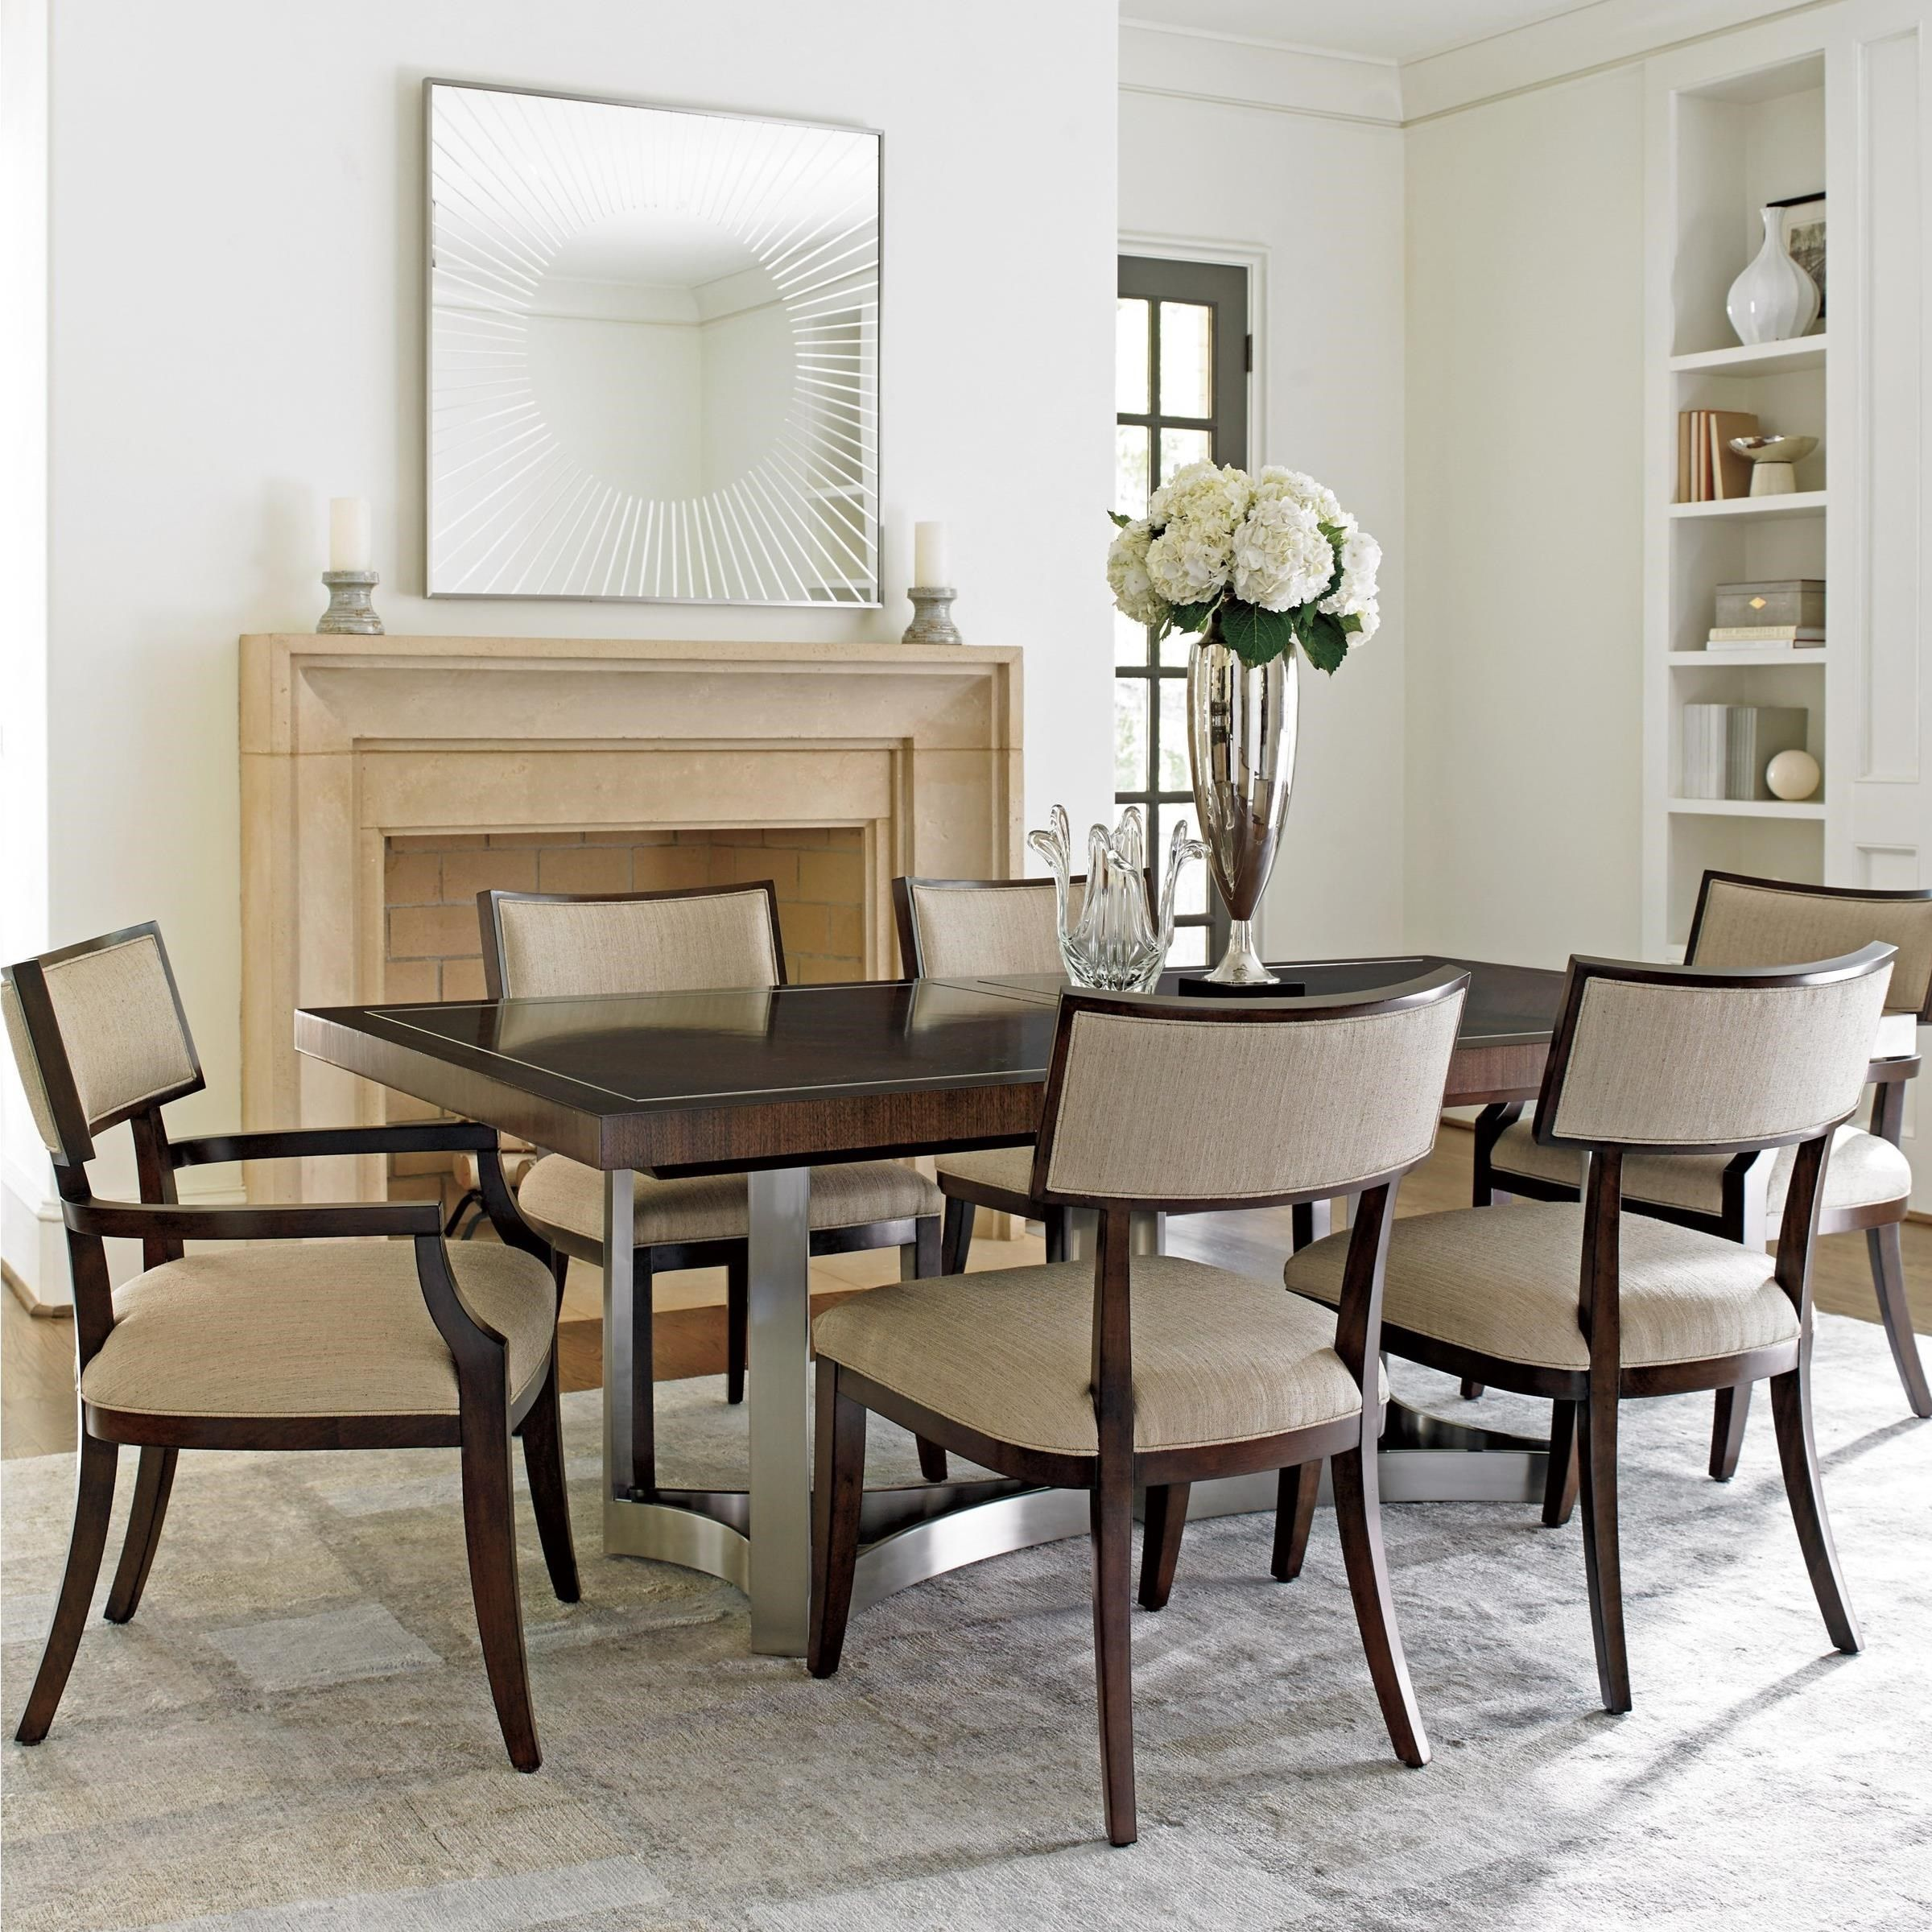 MacArthur Park Seven Piece Dining Set With Beverly Place Table And Whittier Chairs By Lexington At